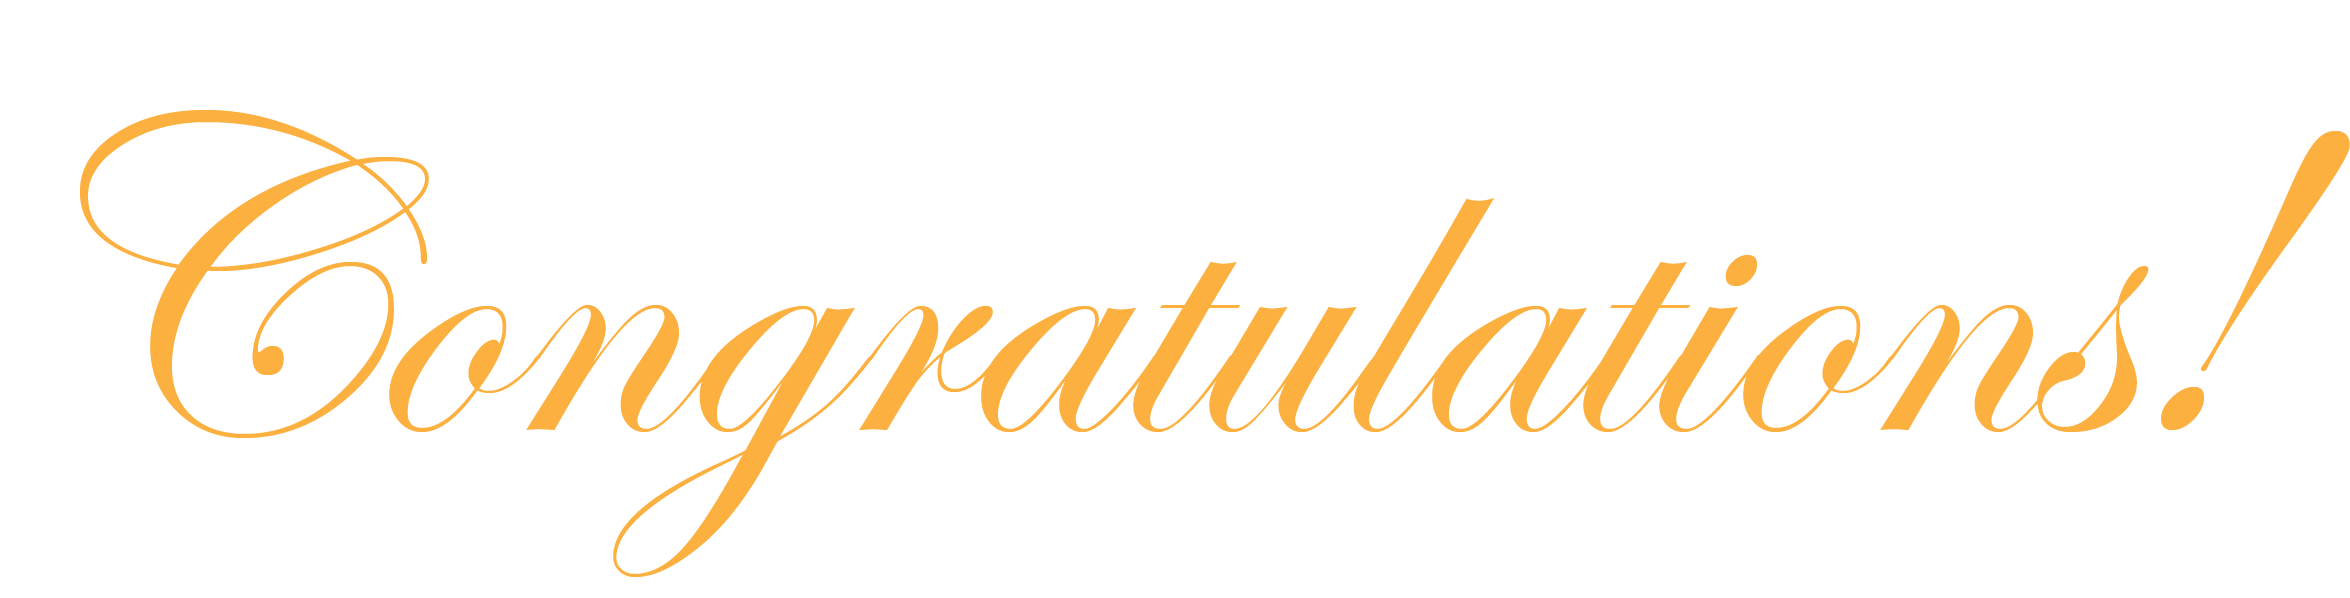 Congratulations png images. Transparent pictures free icons